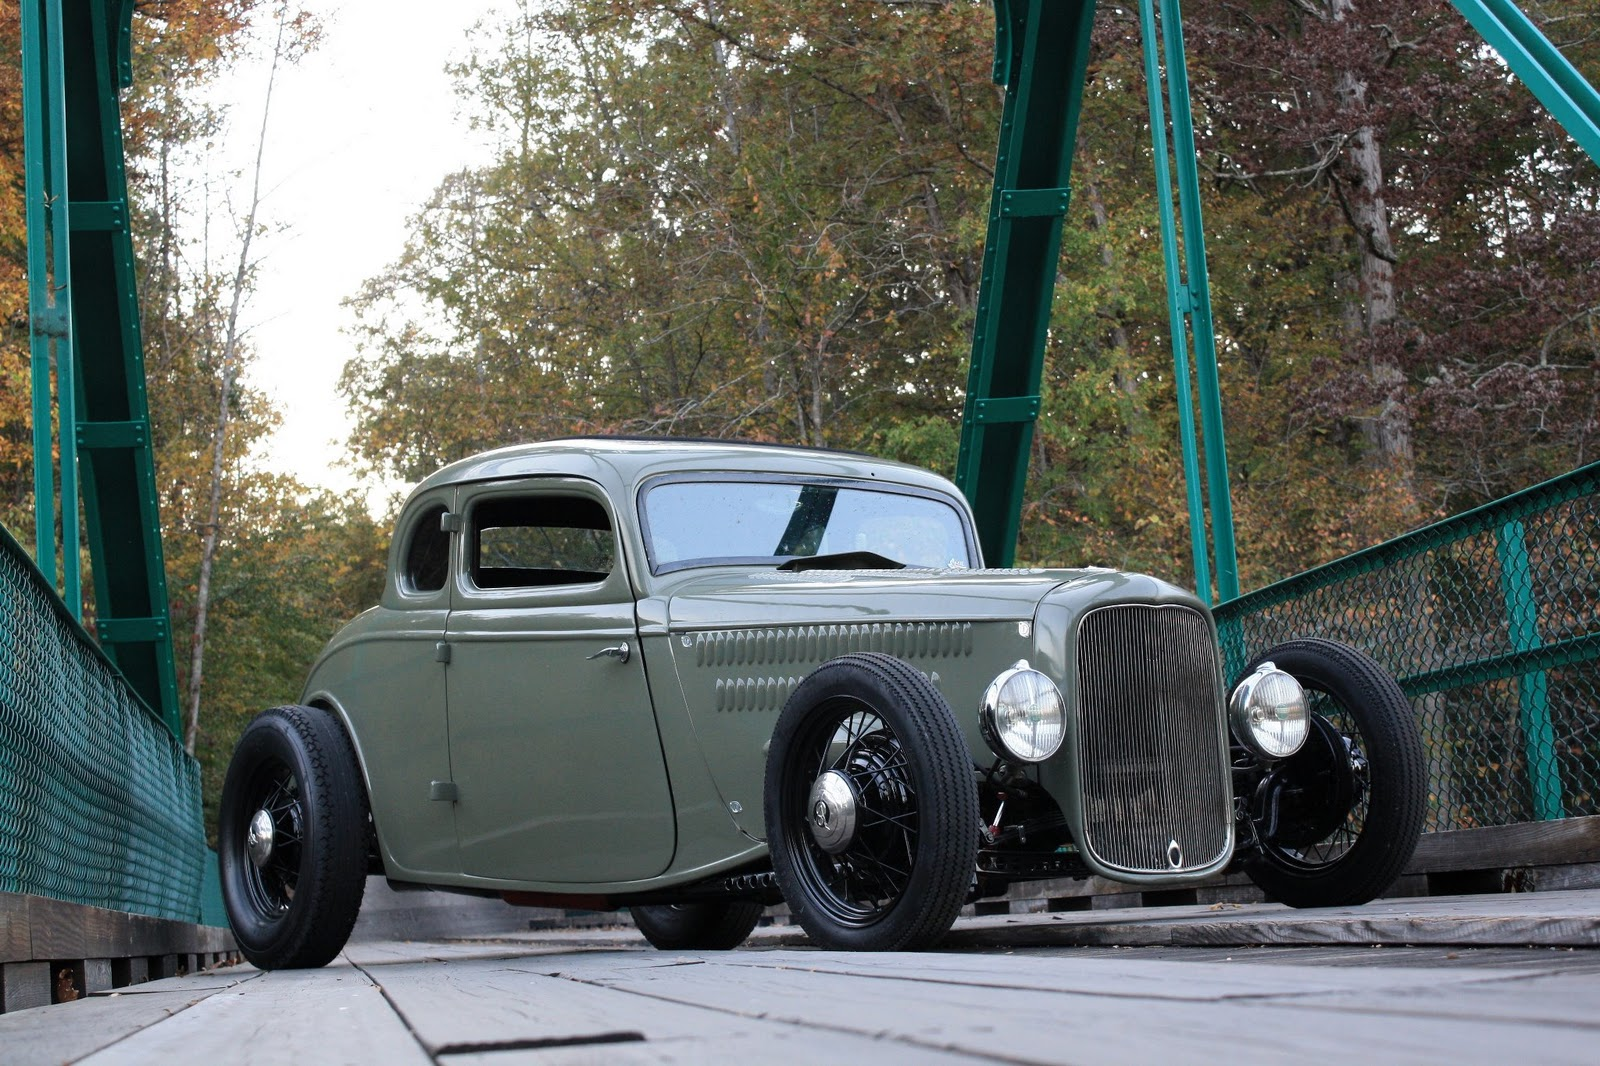 33 Ford Wheels : Hell on wheels ford coupe